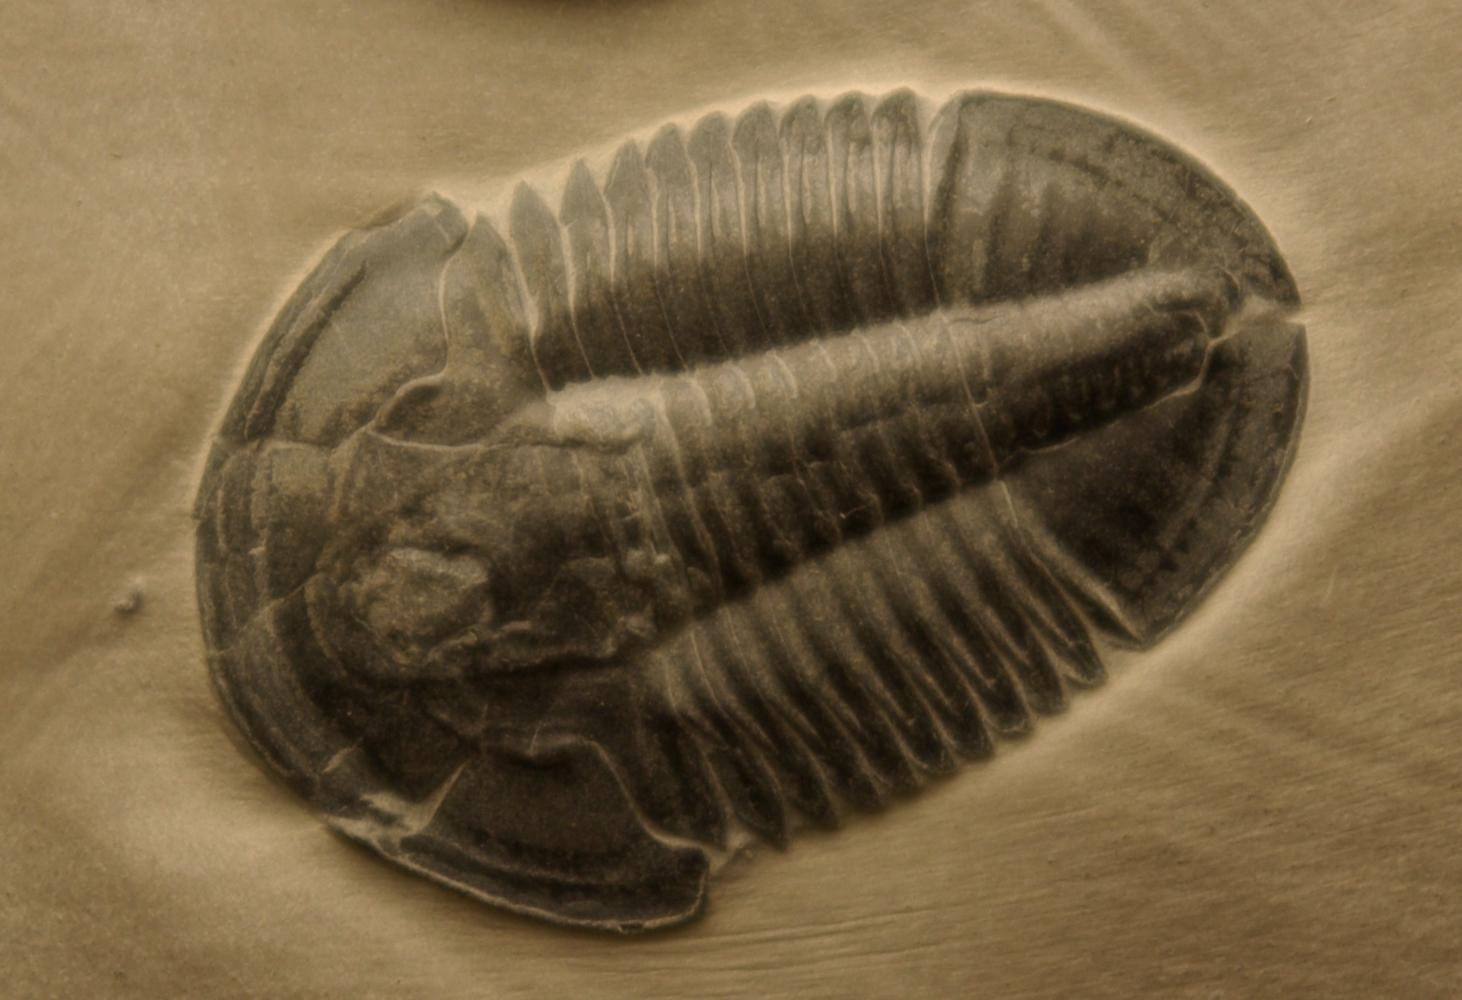 TNRTB Classic: Skeletons in the Cambrian Explosion